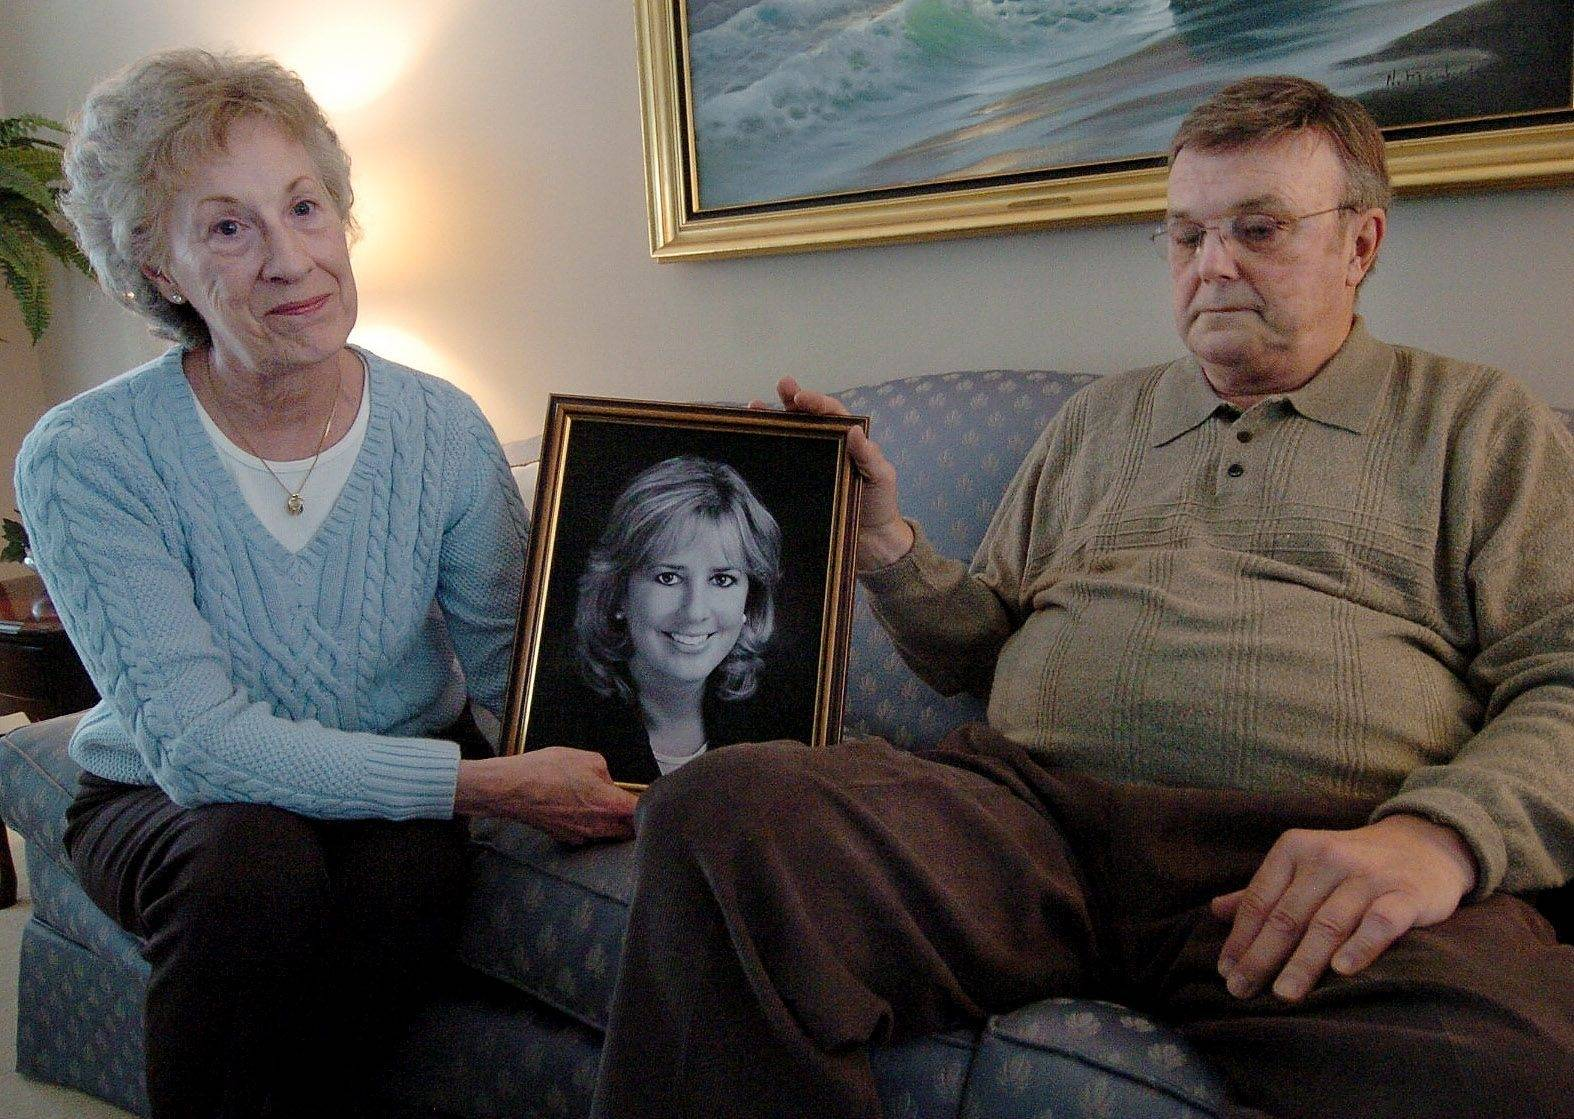 Frank and Barbara Bischof with a portrait of their daughter Cindy.